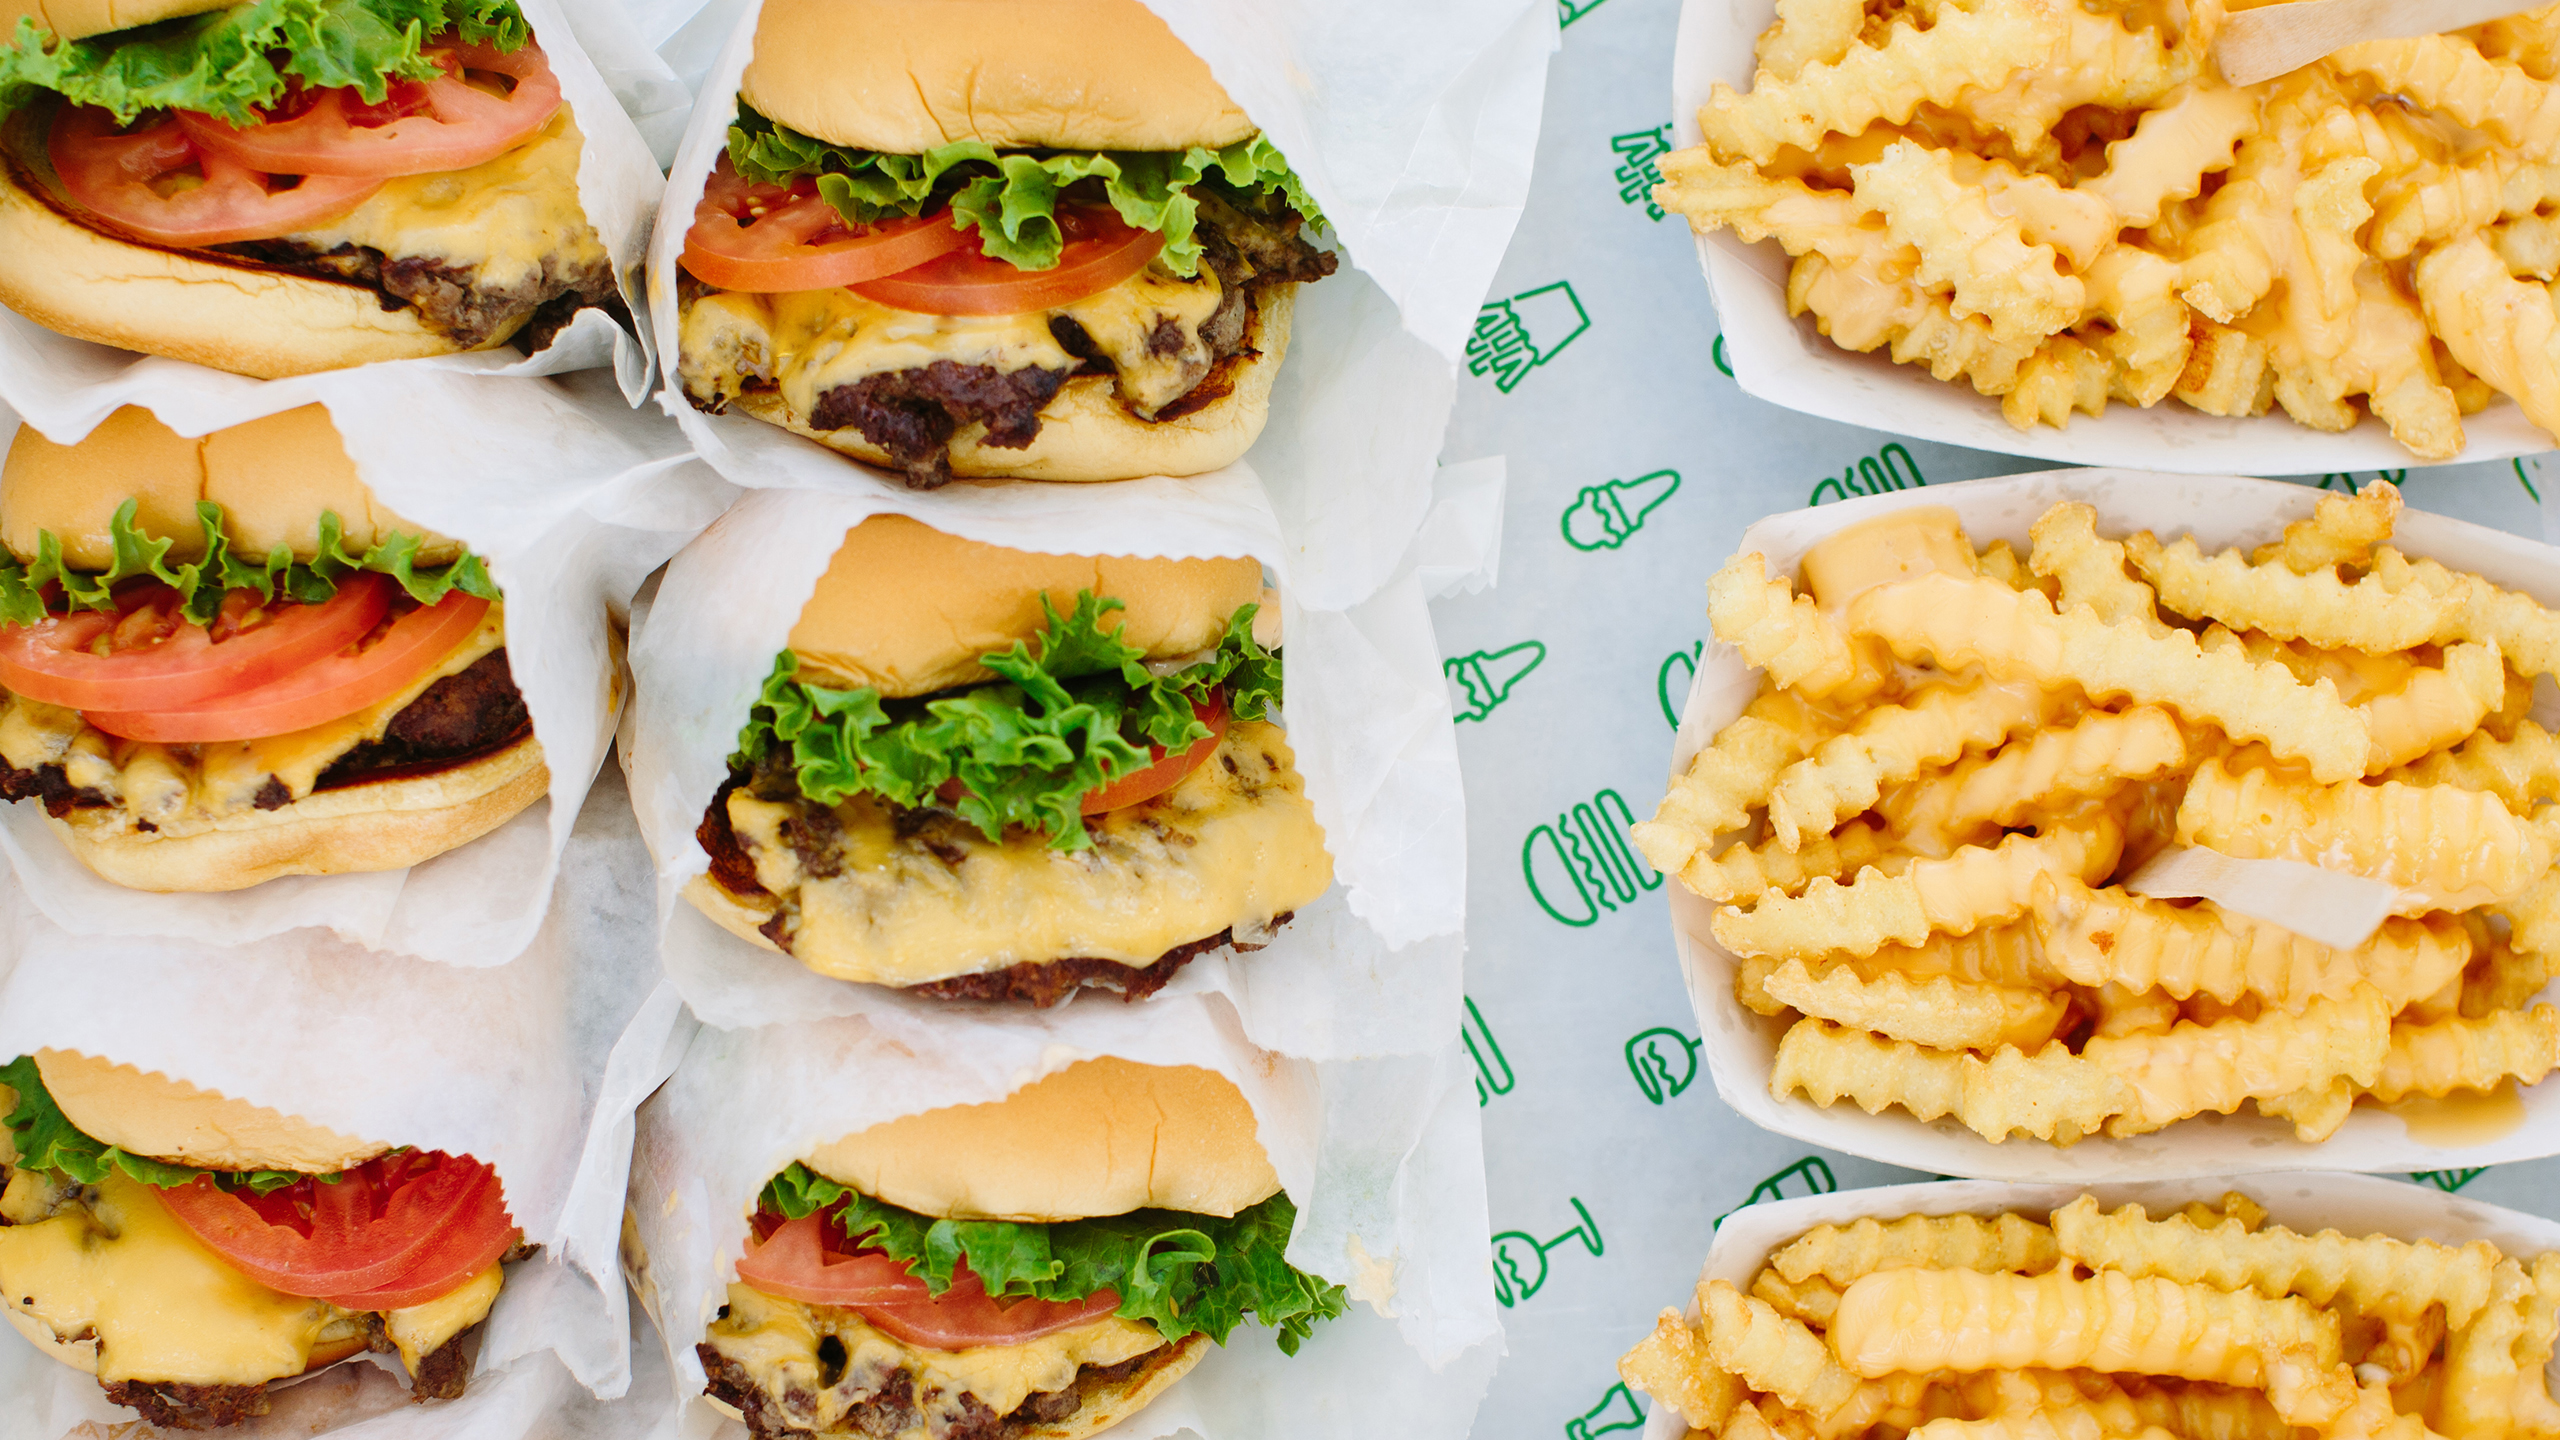 Burgers and fries from Shake Shack